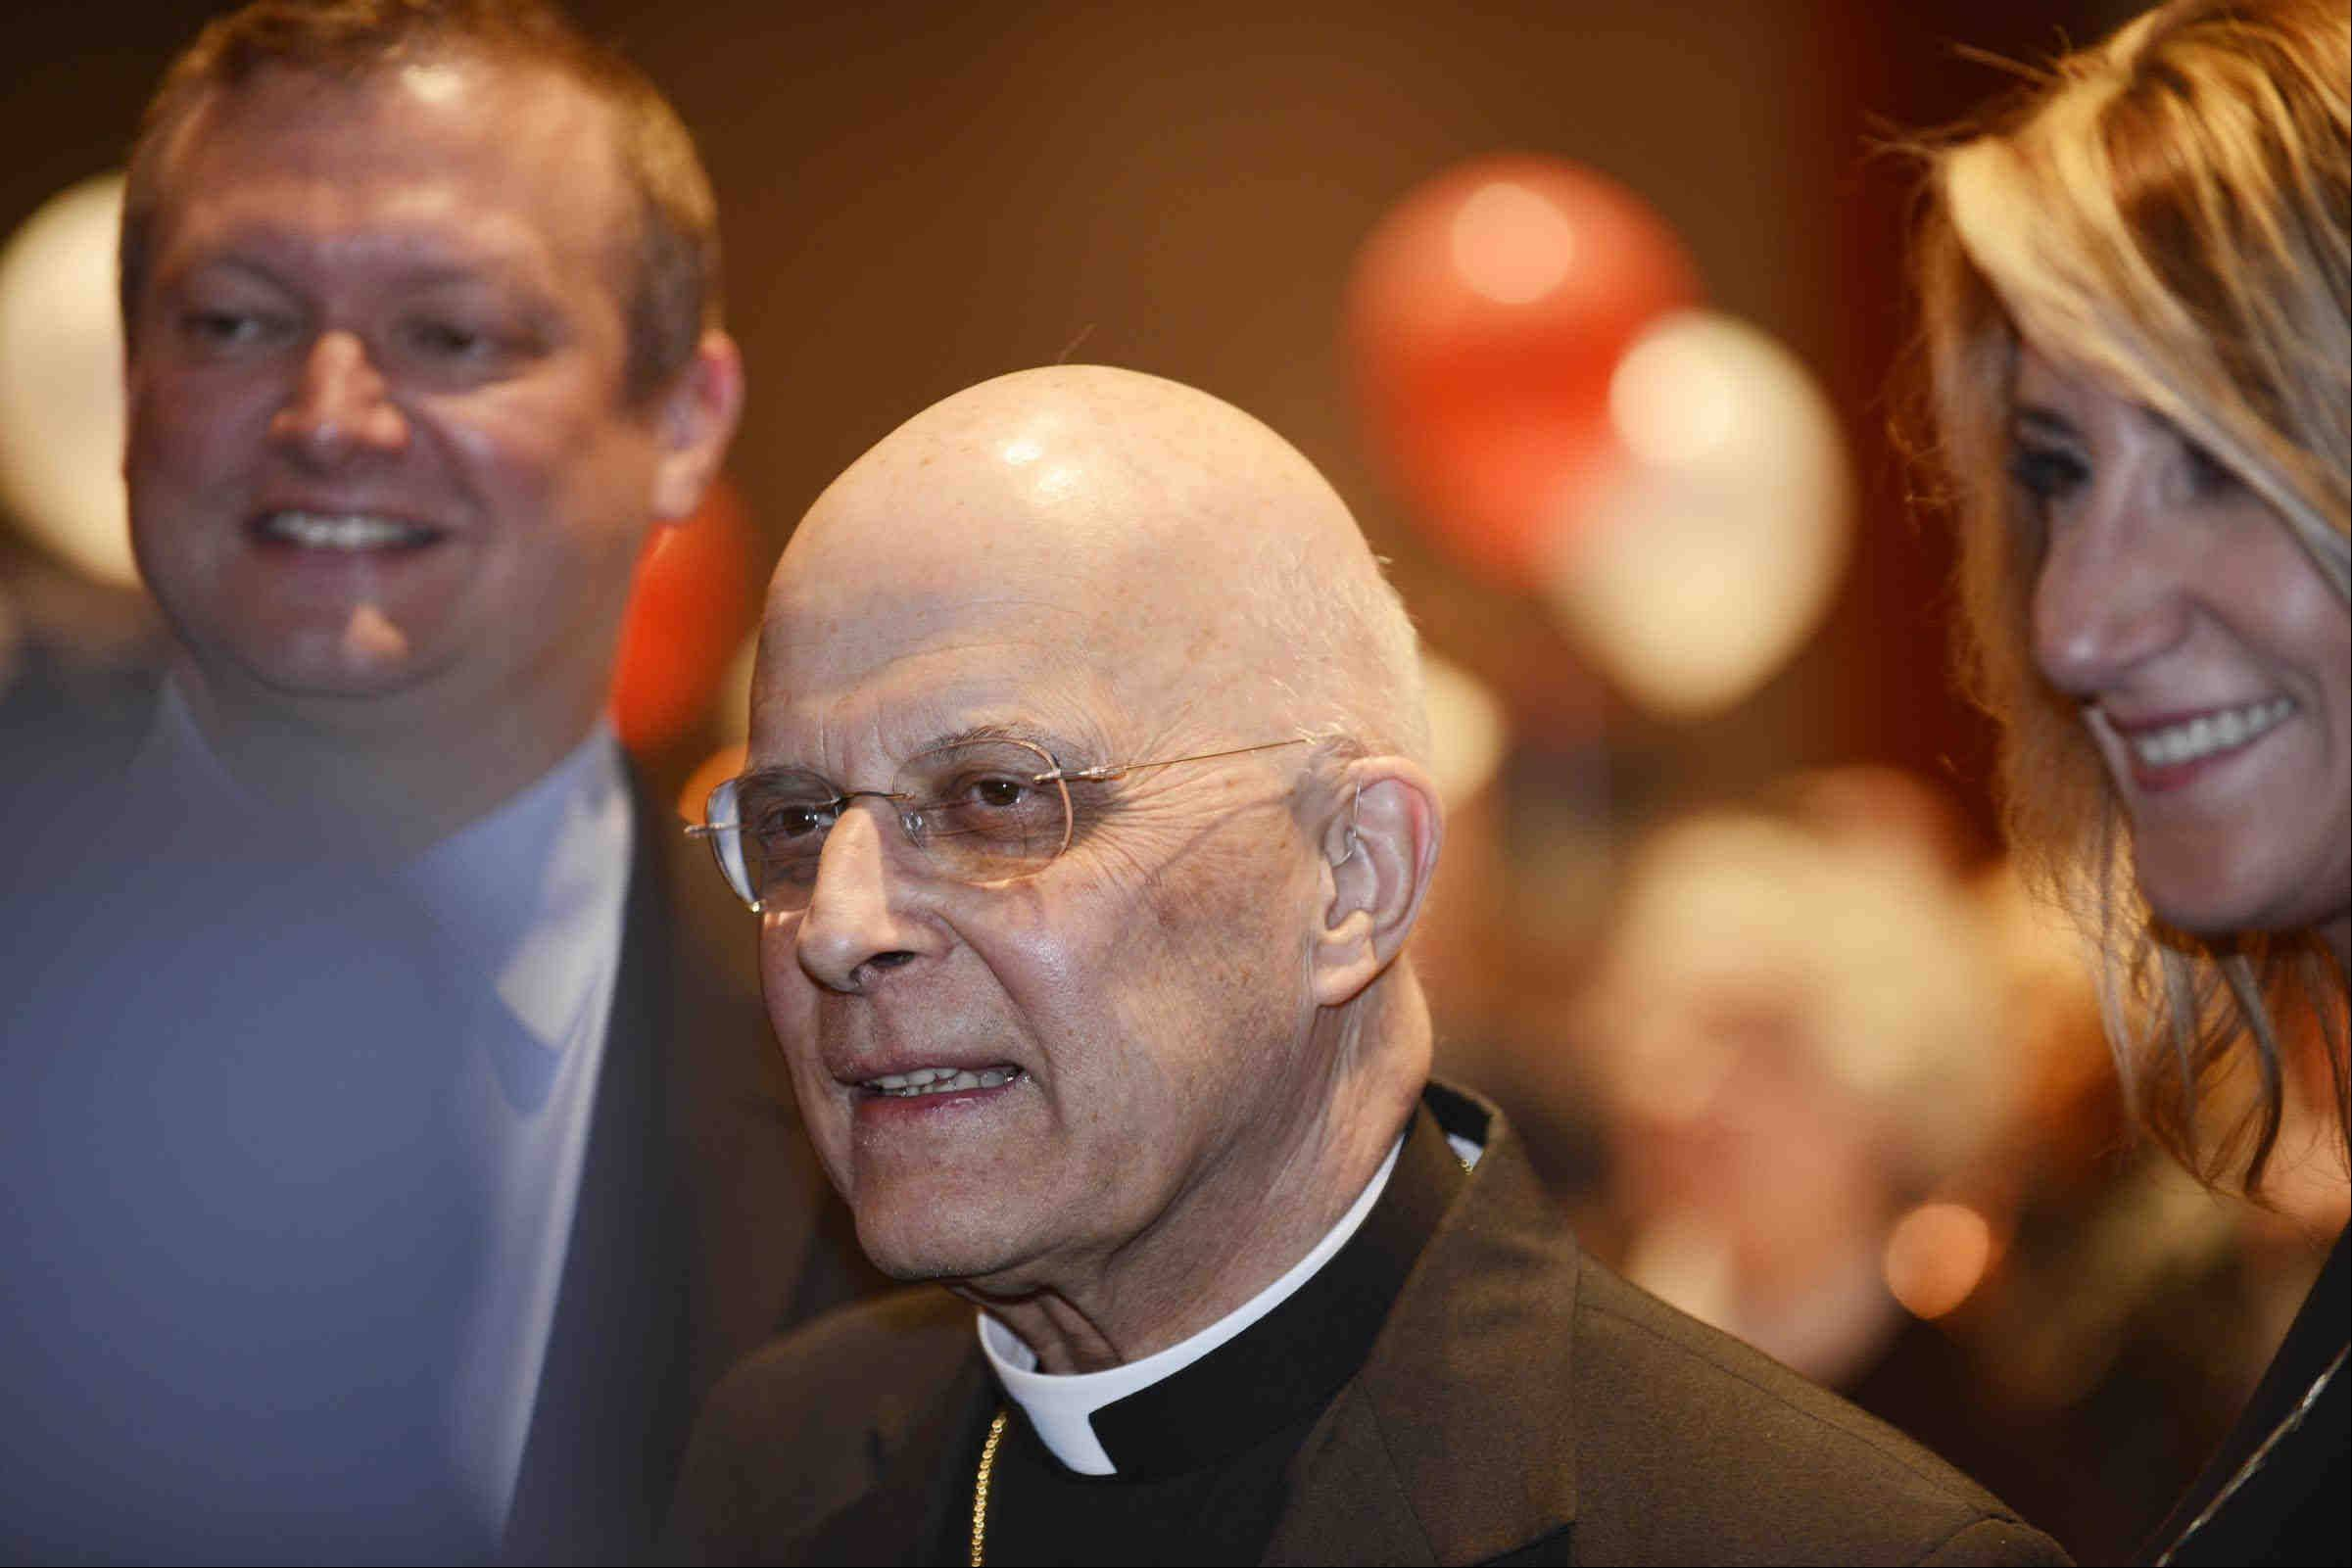 John Starks/jstarks@dailyherald.comFrancis Cardinal George walks through a crowd of almost 400 people Sunday evening before the Amazing Grace Gala at The Stonegate Banquet Centre in Hoffman Estates.